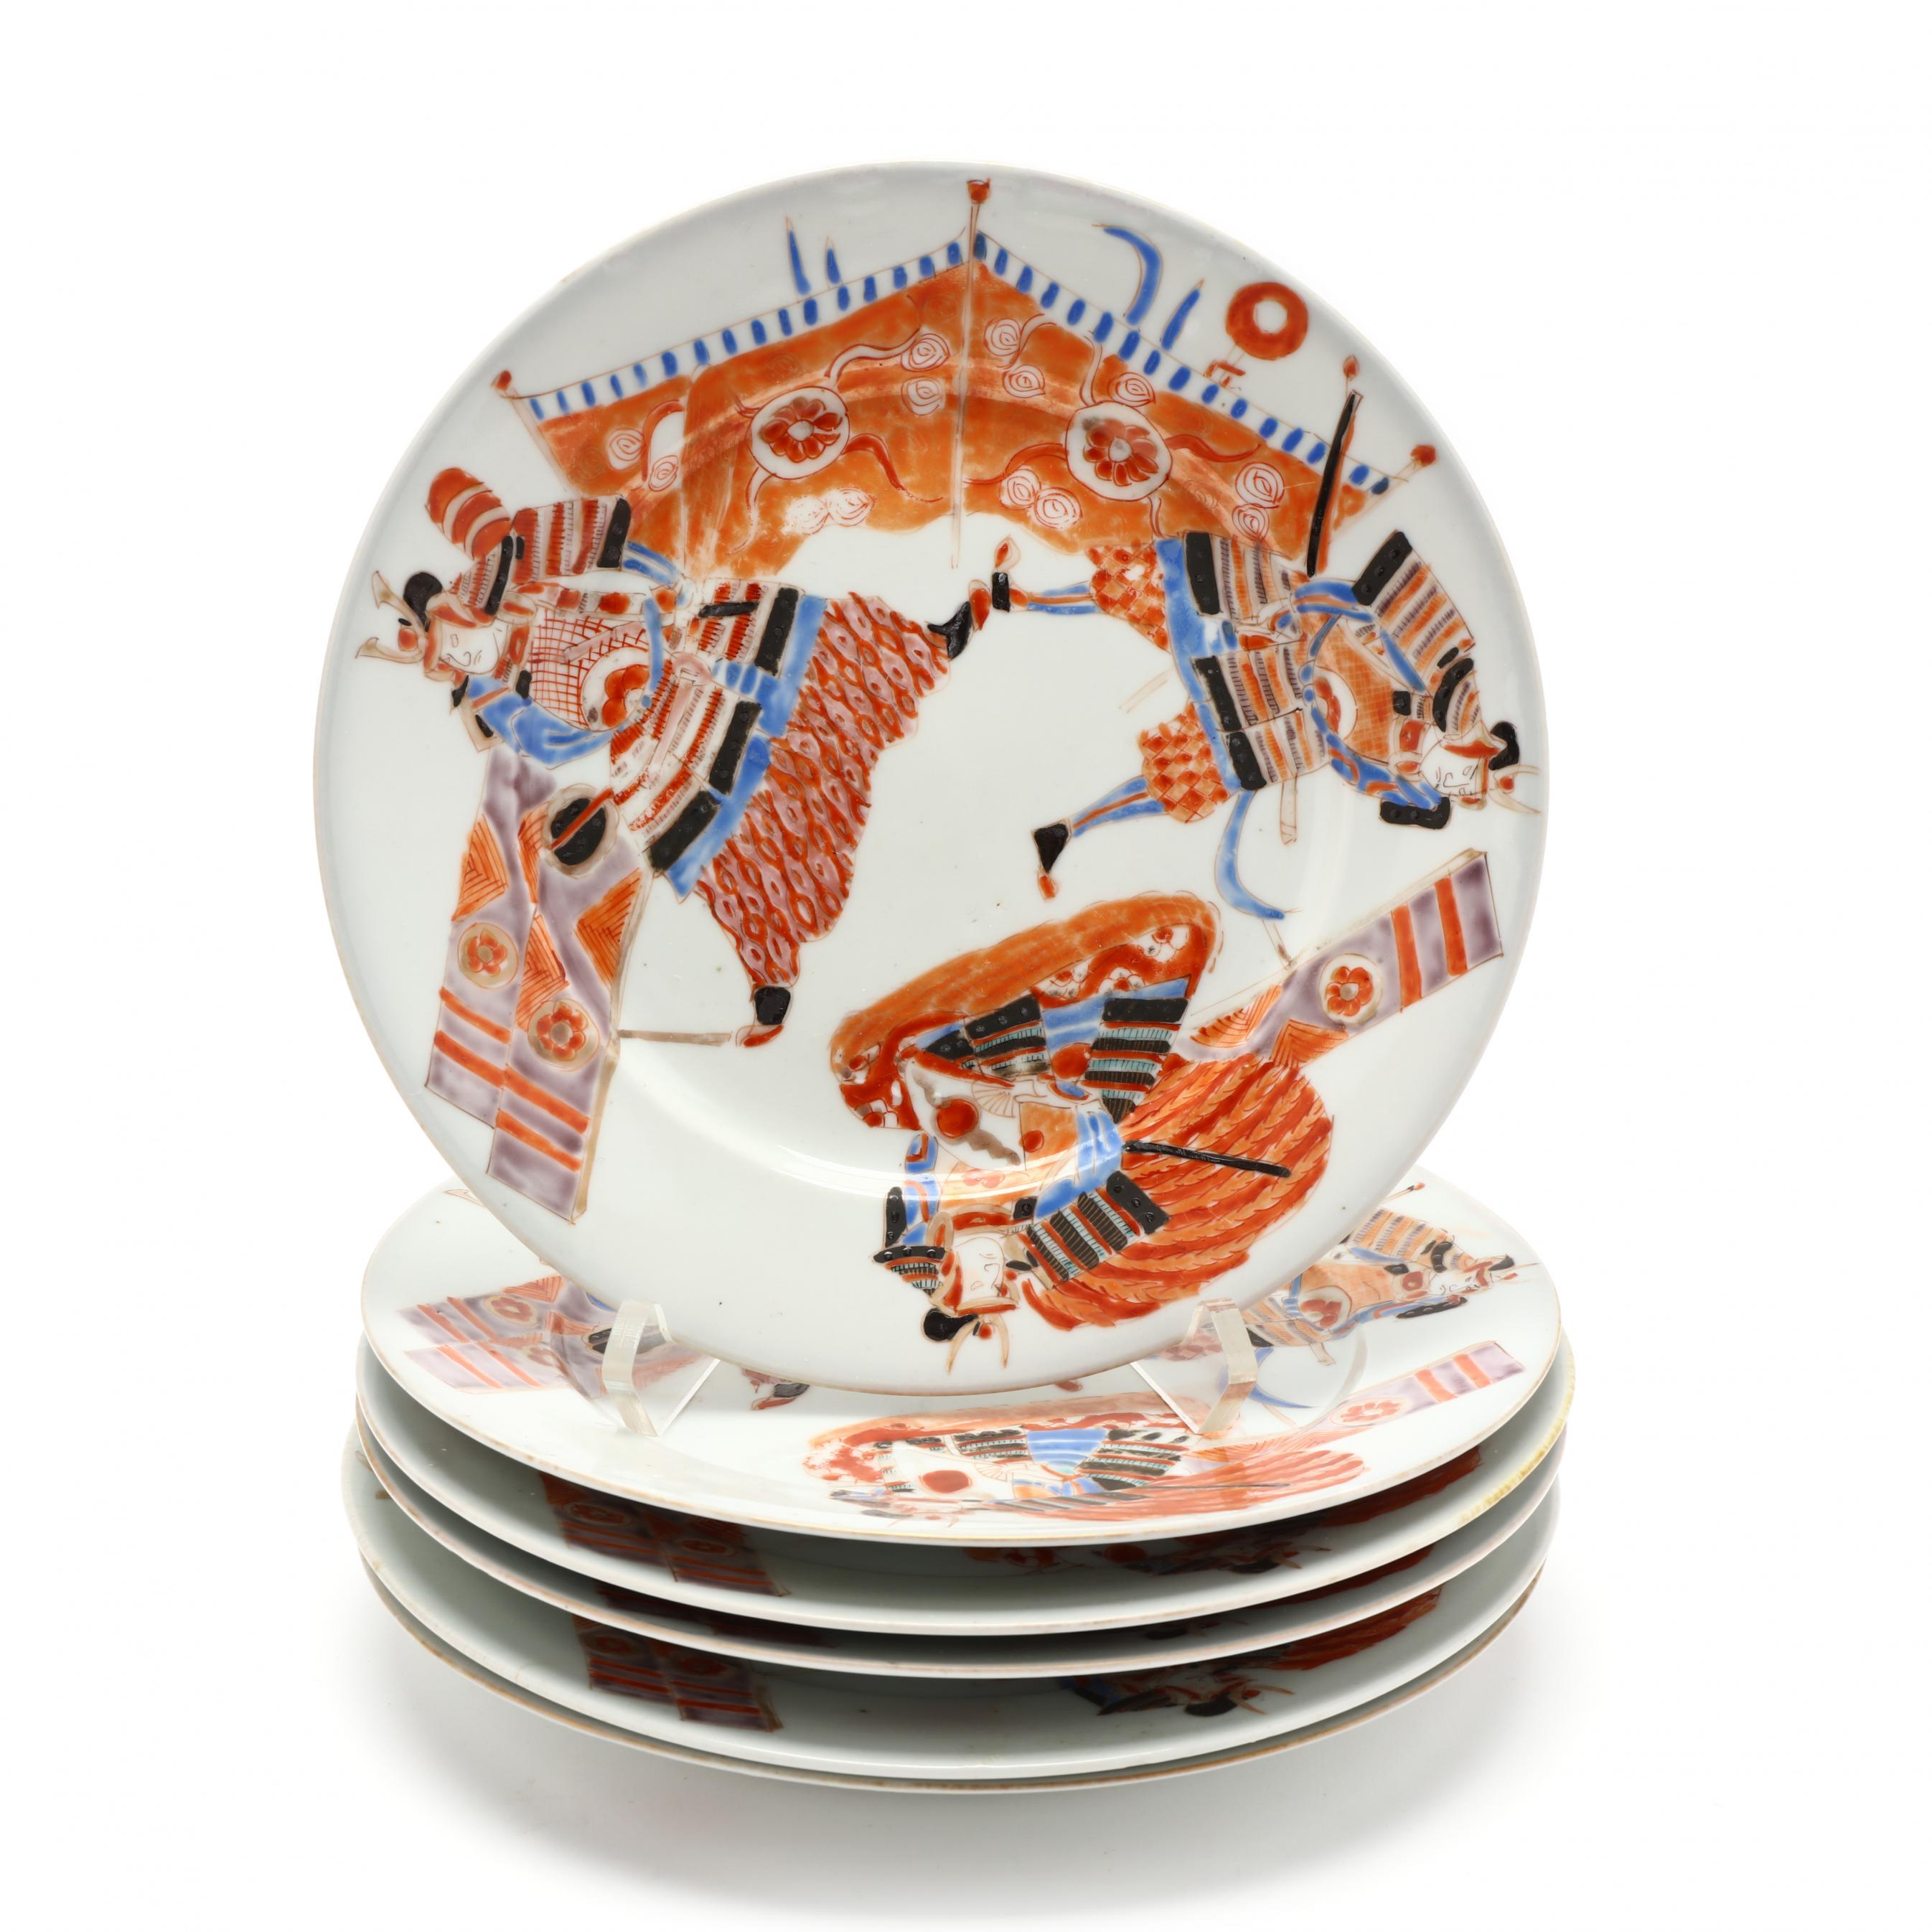 six-japanese-plates-decorated-with-warriors